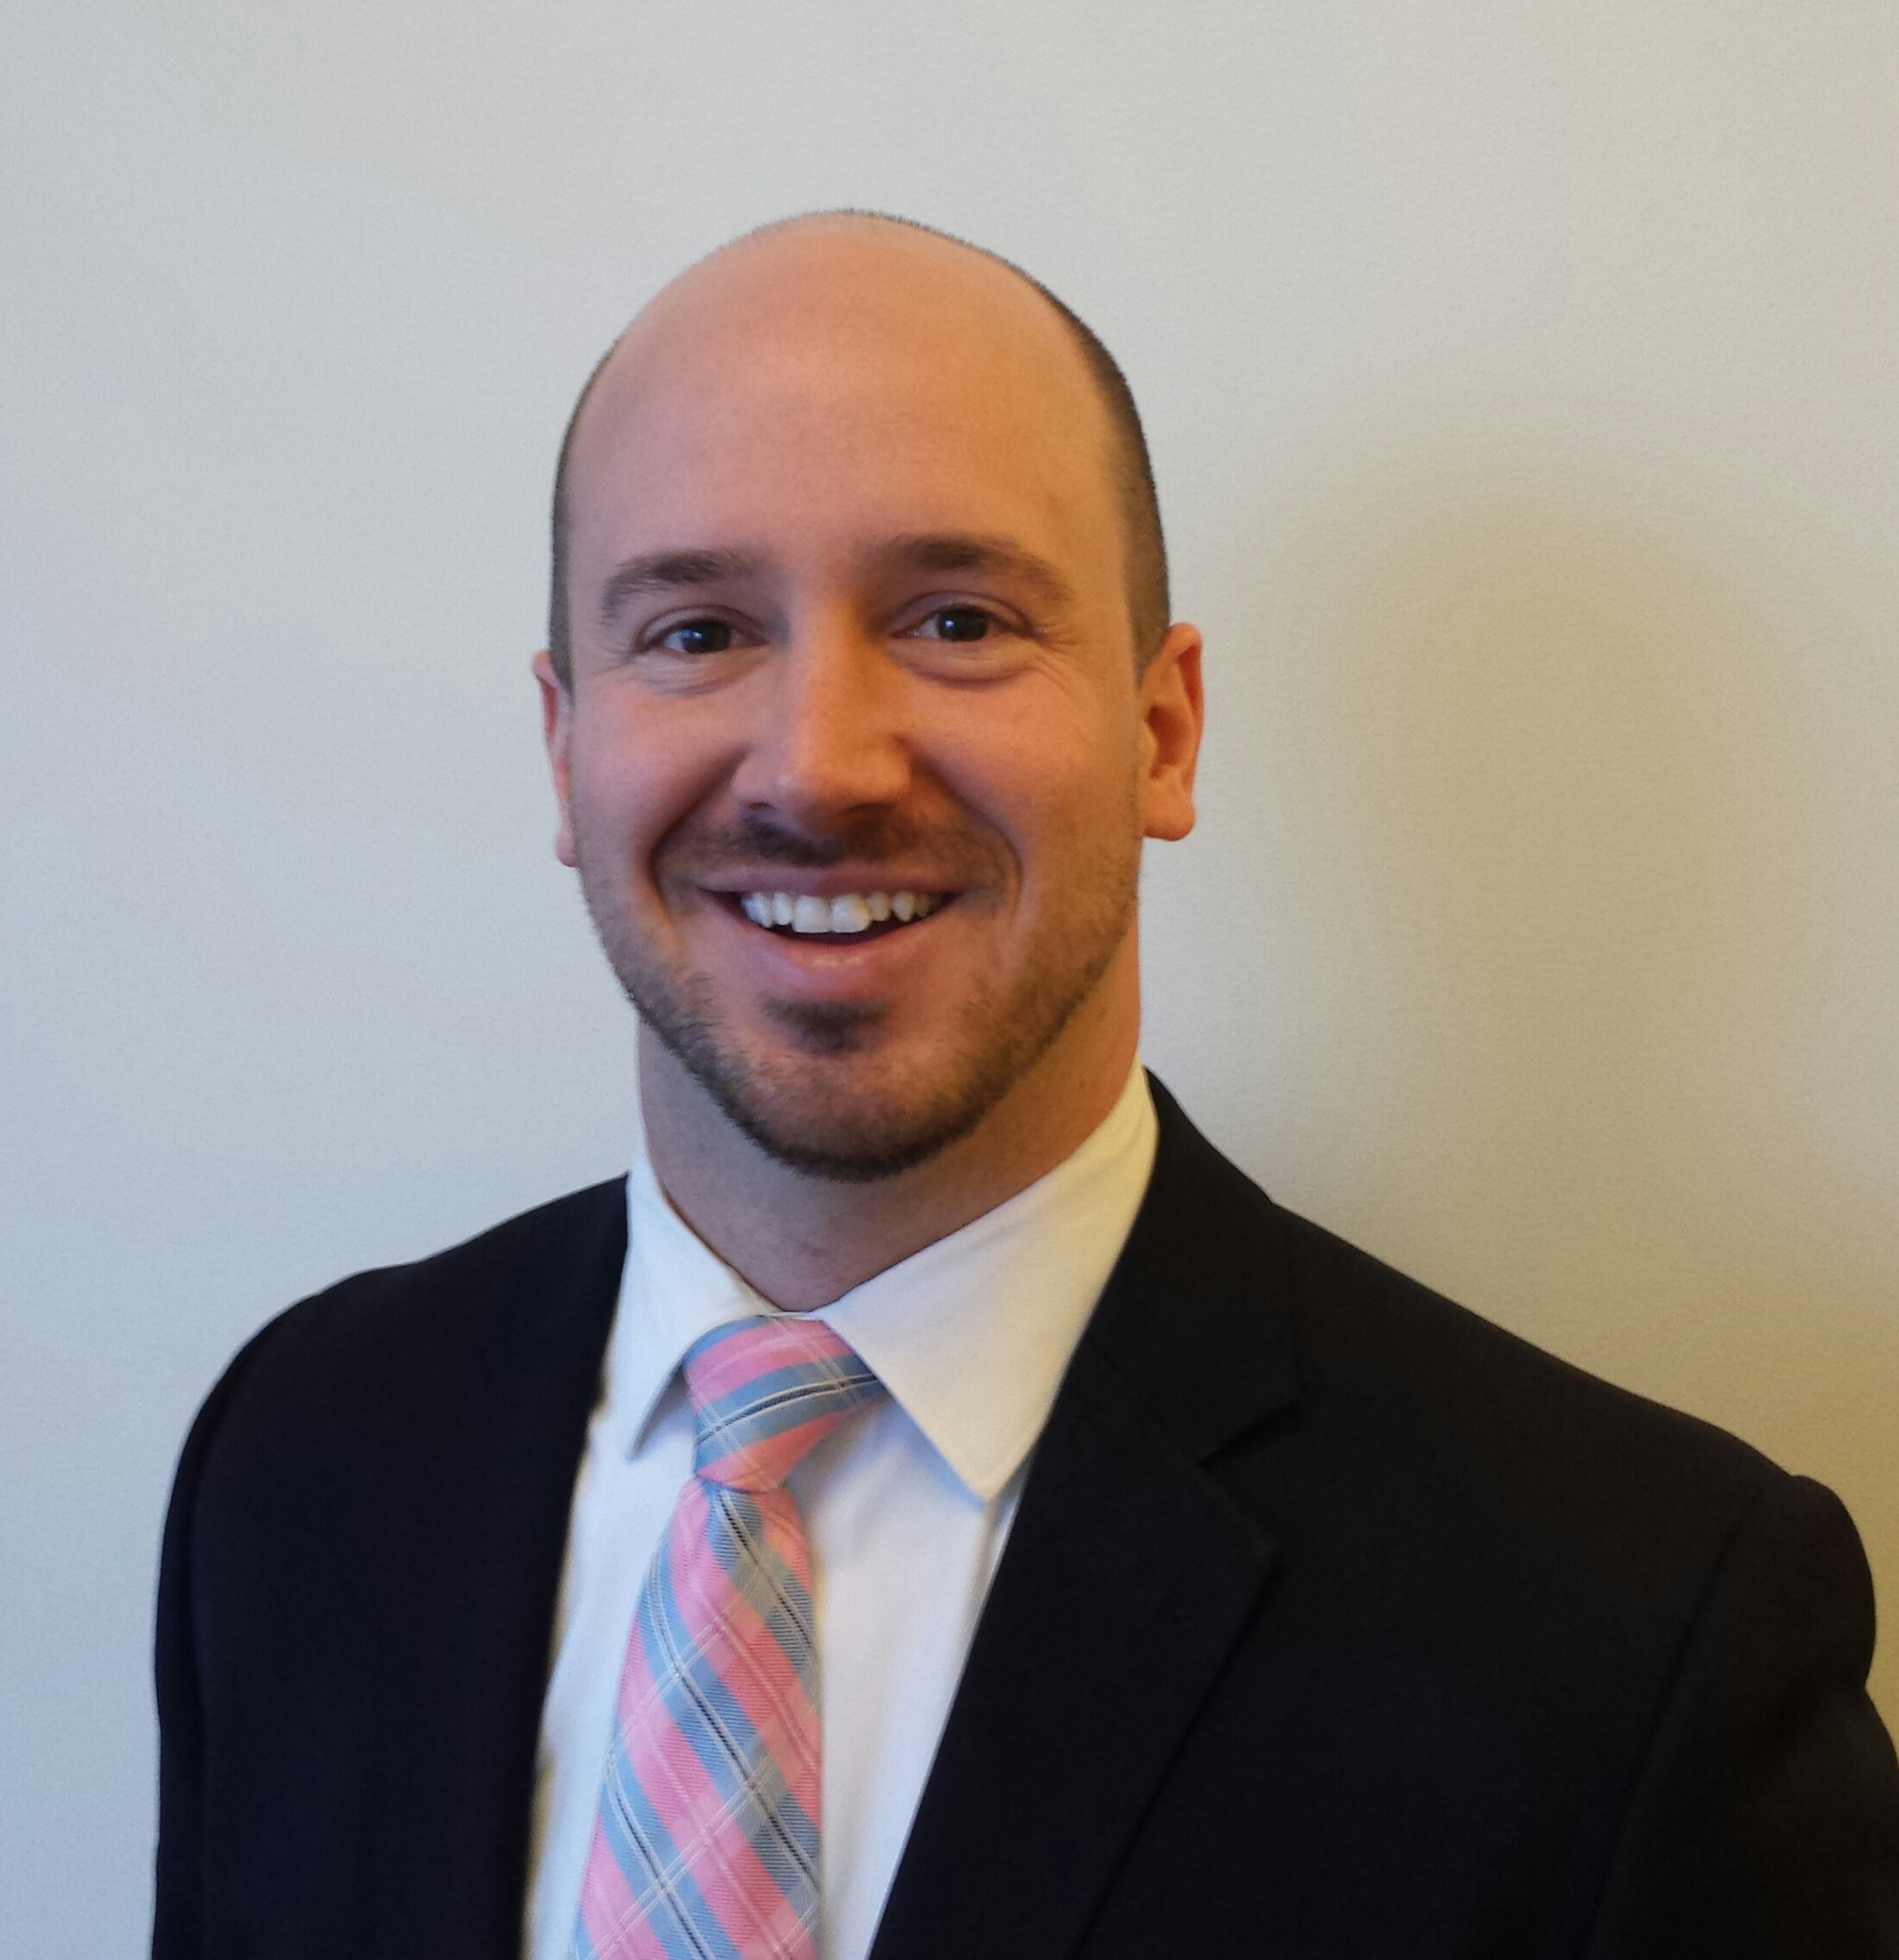 Kevin Merling, financial advisor Downers Grove IL